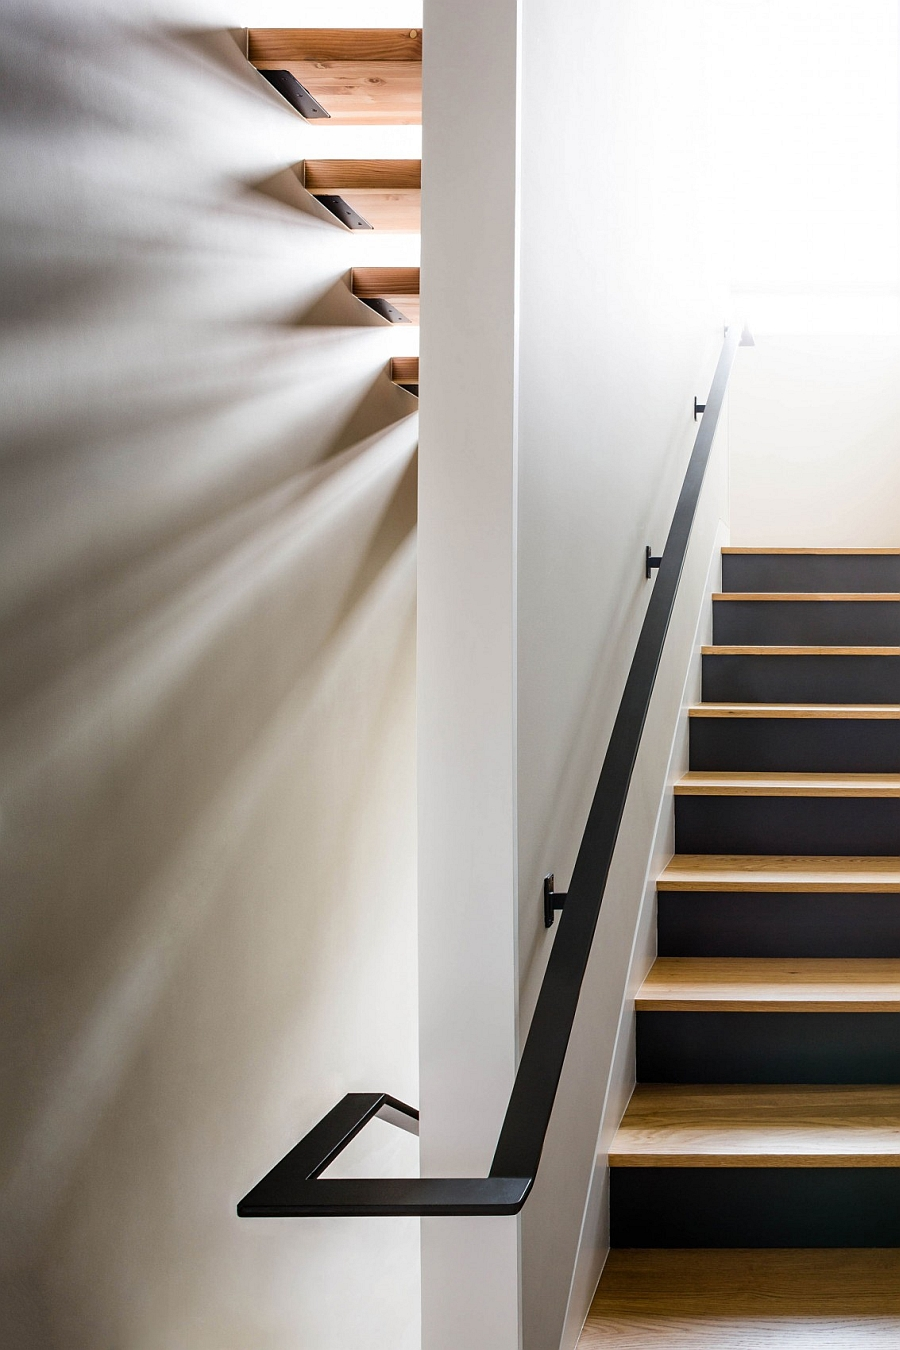 Beautiful wooden staircase design for the space-conscious modern home